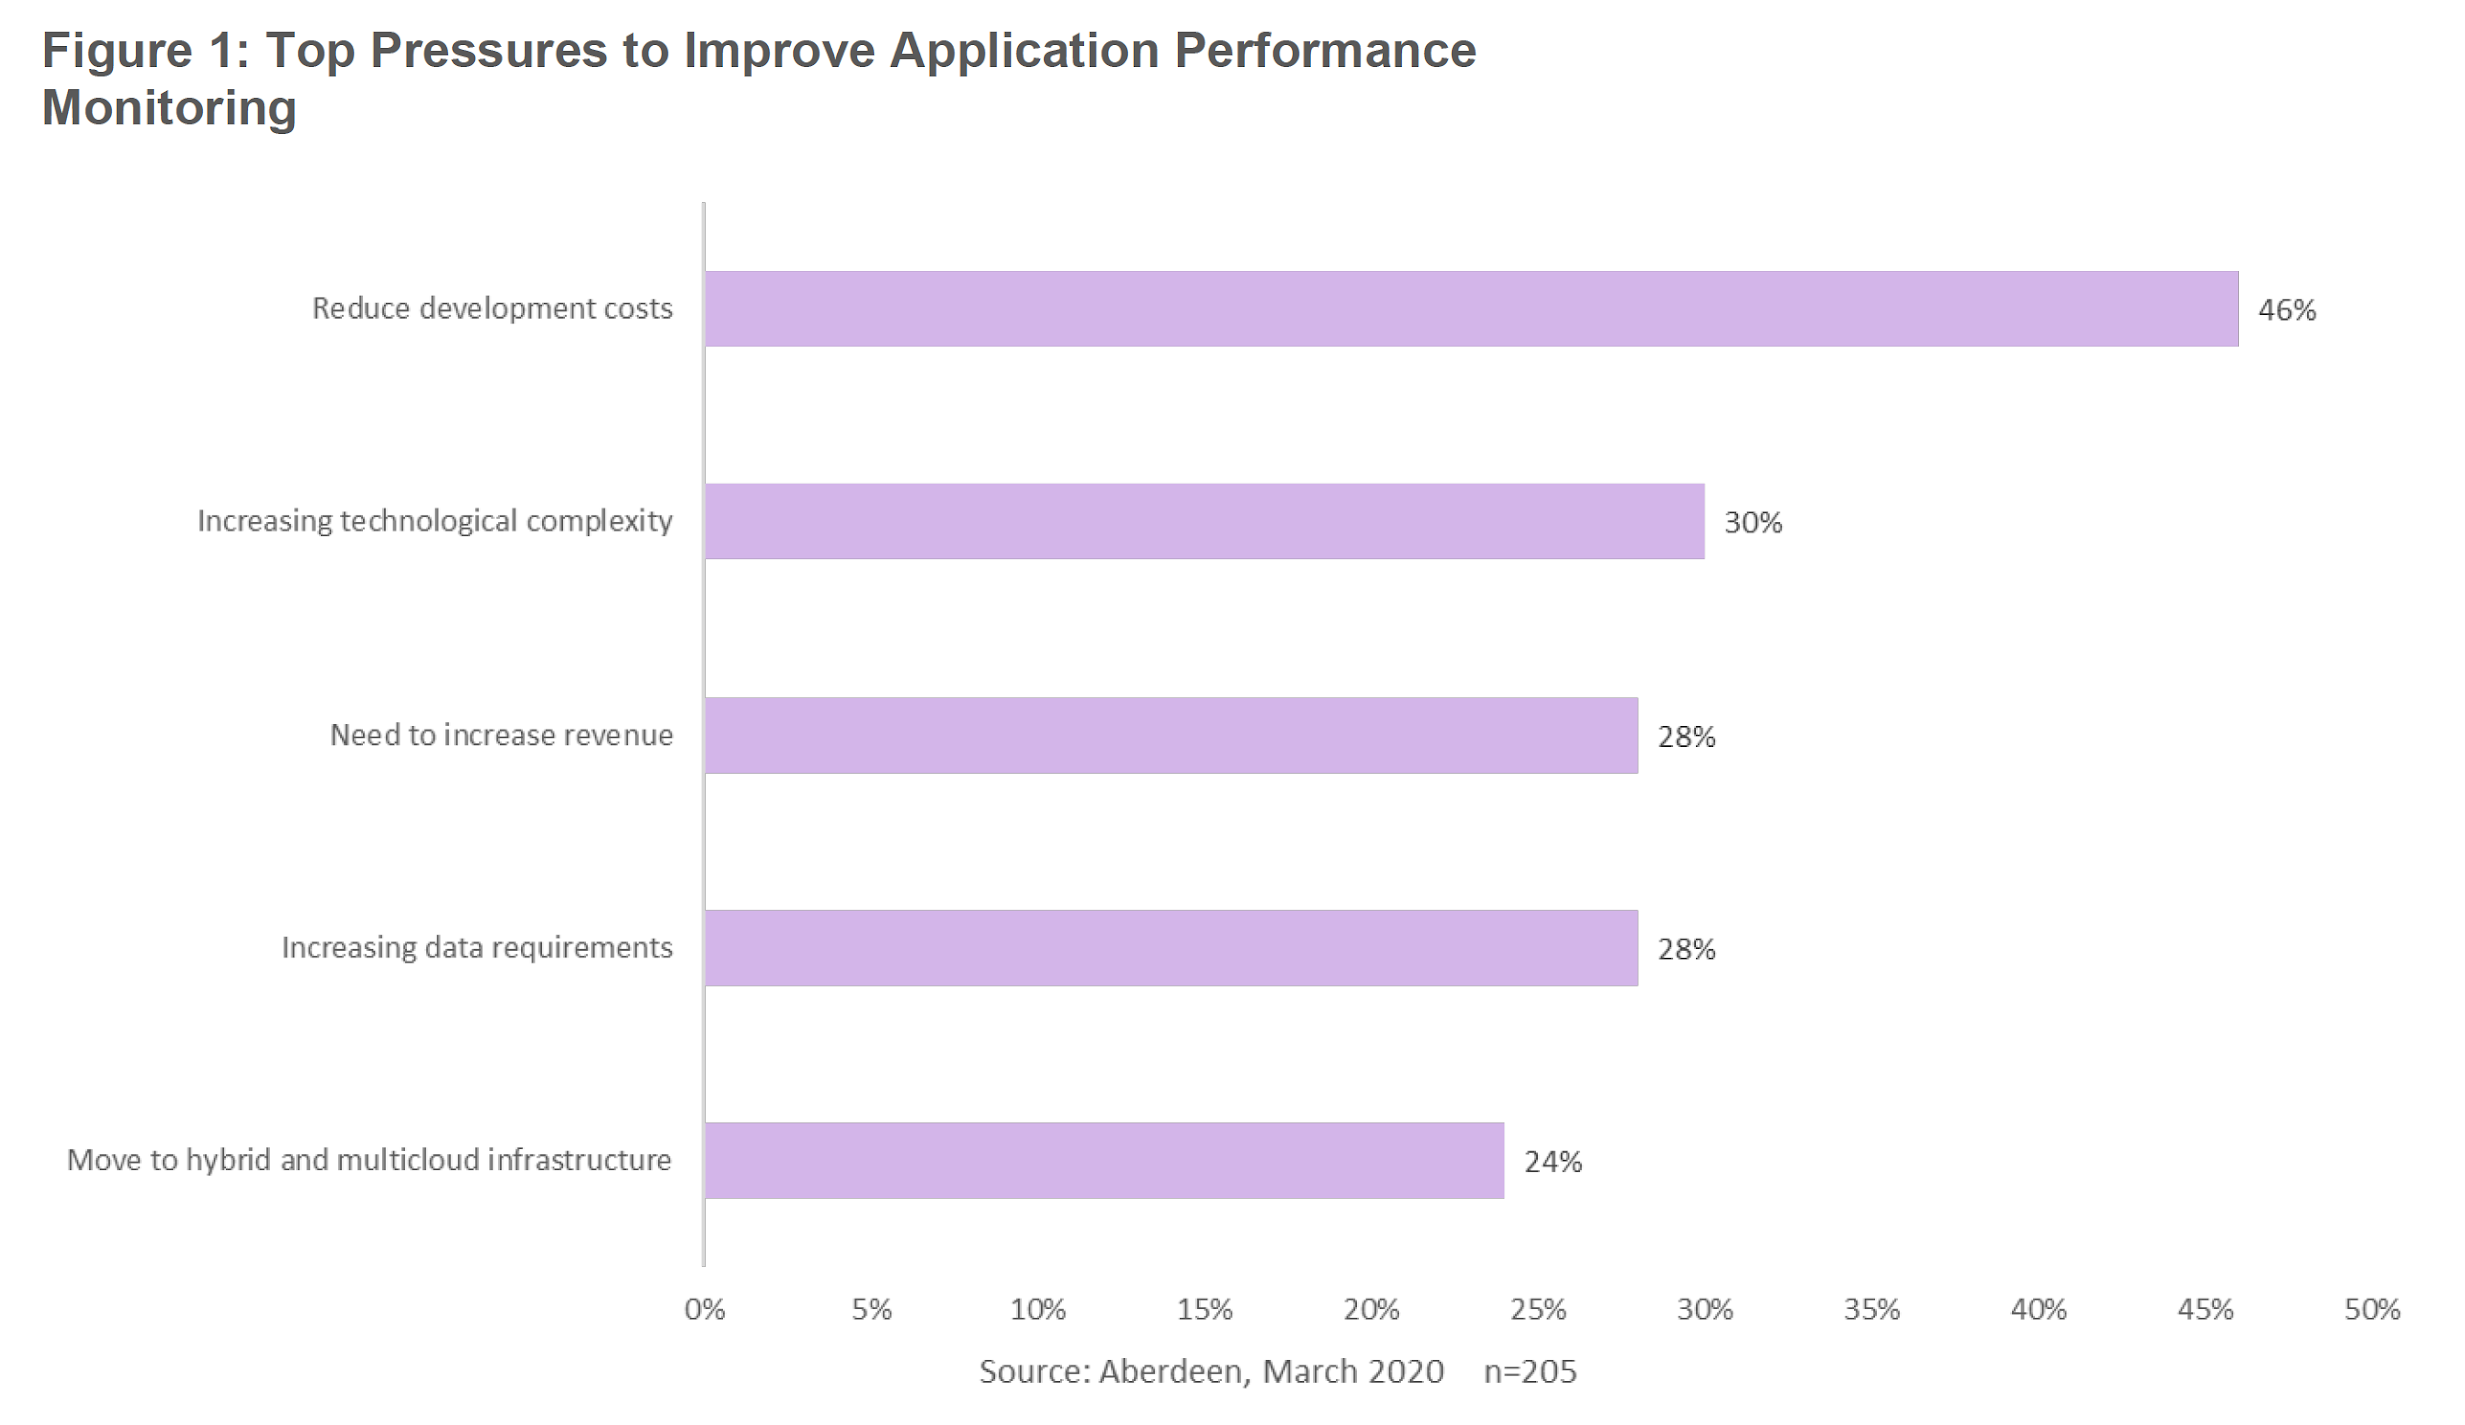 Figure 1: Top Pressures to Improve Application Performance Monitoring